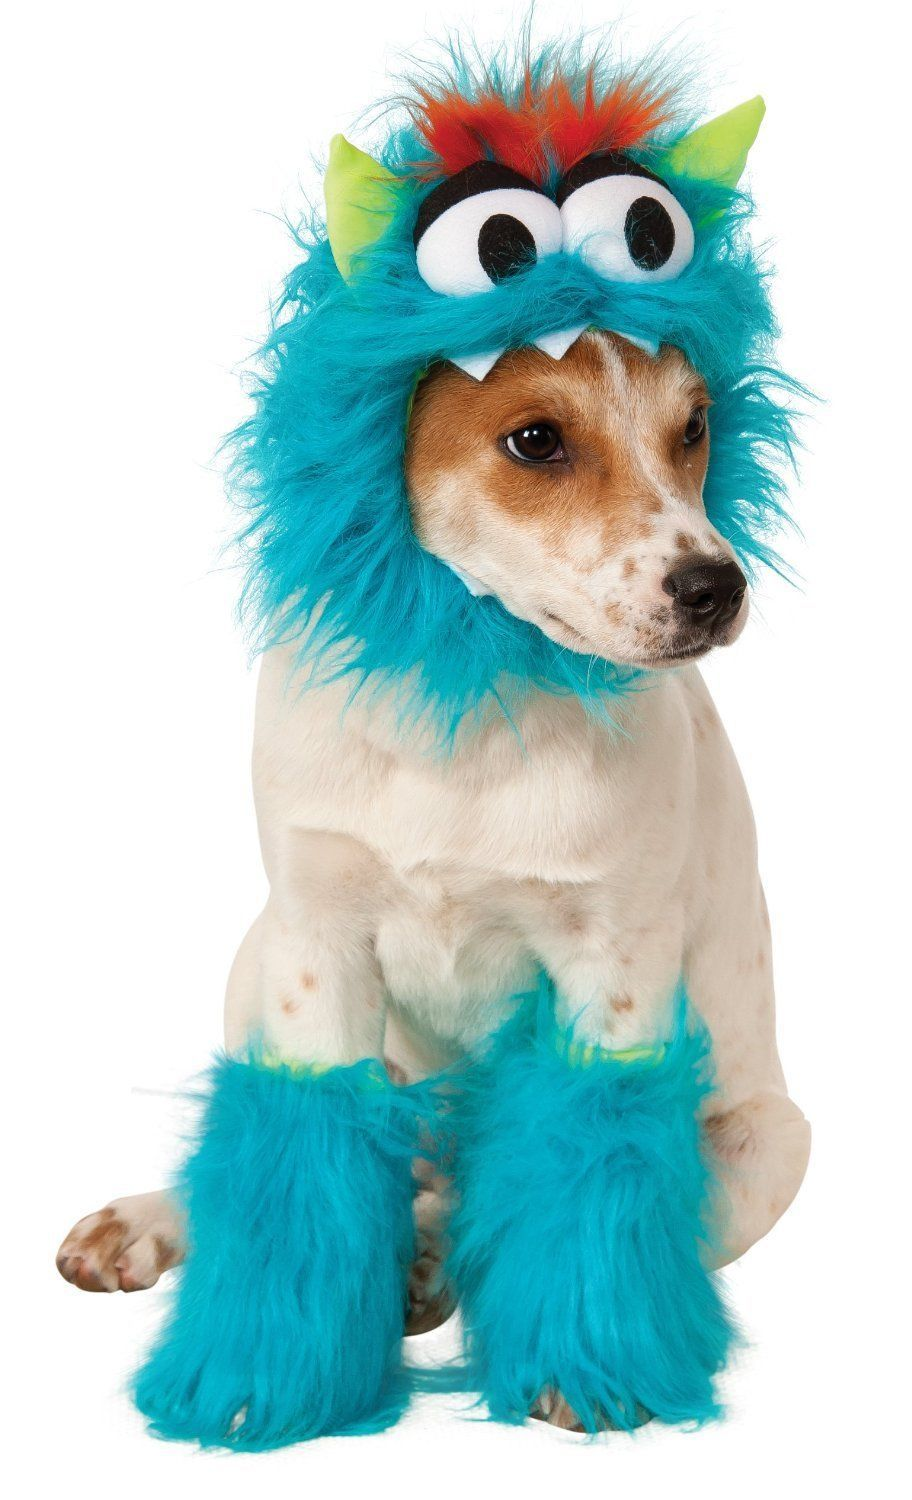 Image 3 of Adorable Pet Dog Costume: Blue Monster 580179 or Pink Monster 580180, Rubies - B